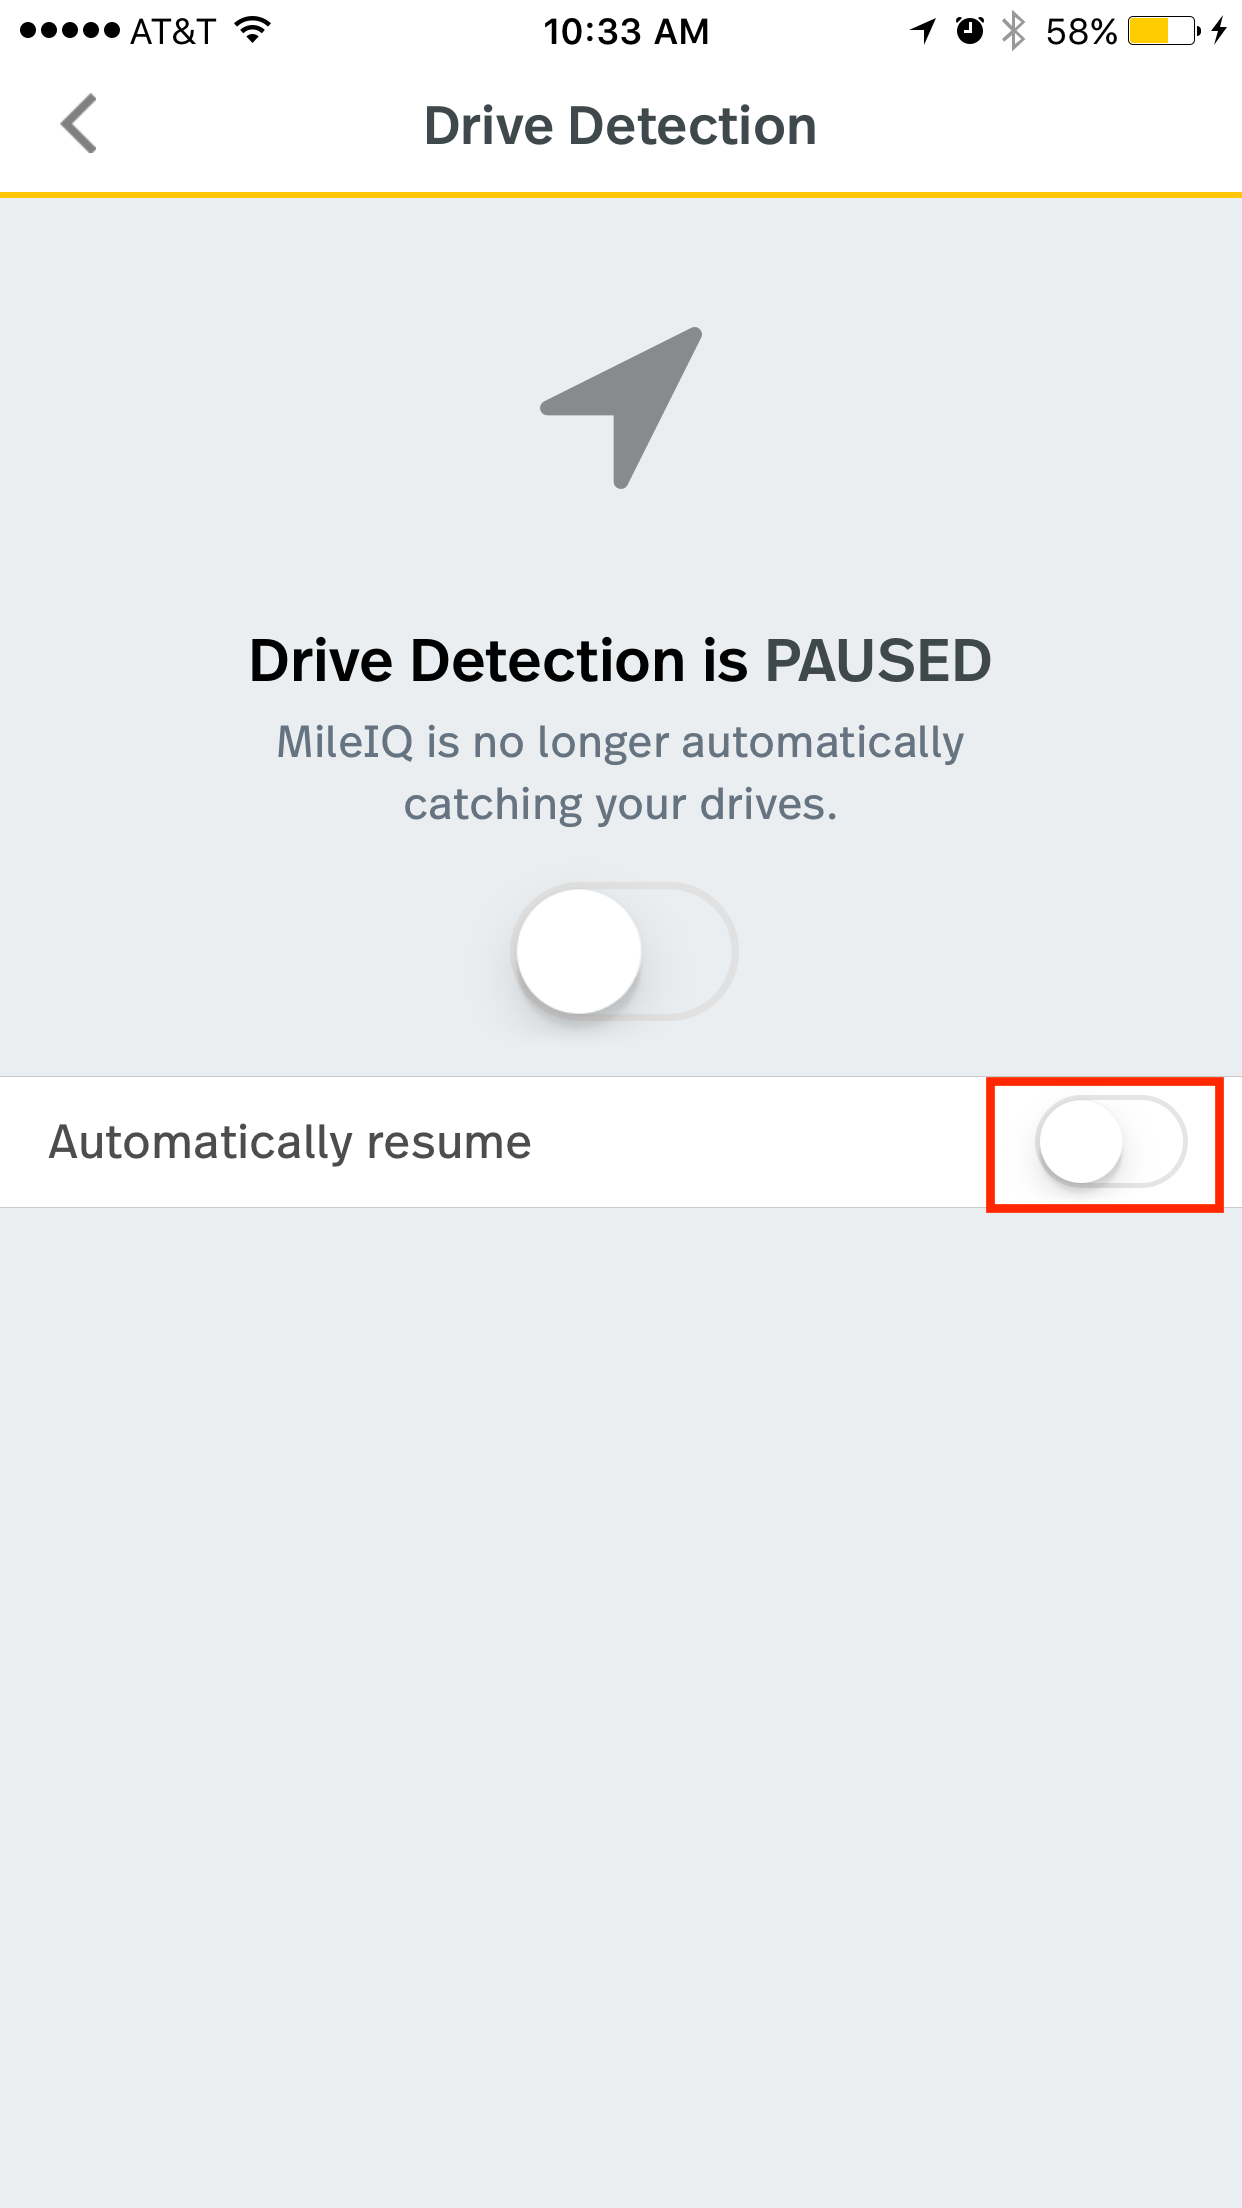 This image shows the drive detection page on the mobile app, highlighting the automatically resume toggle.